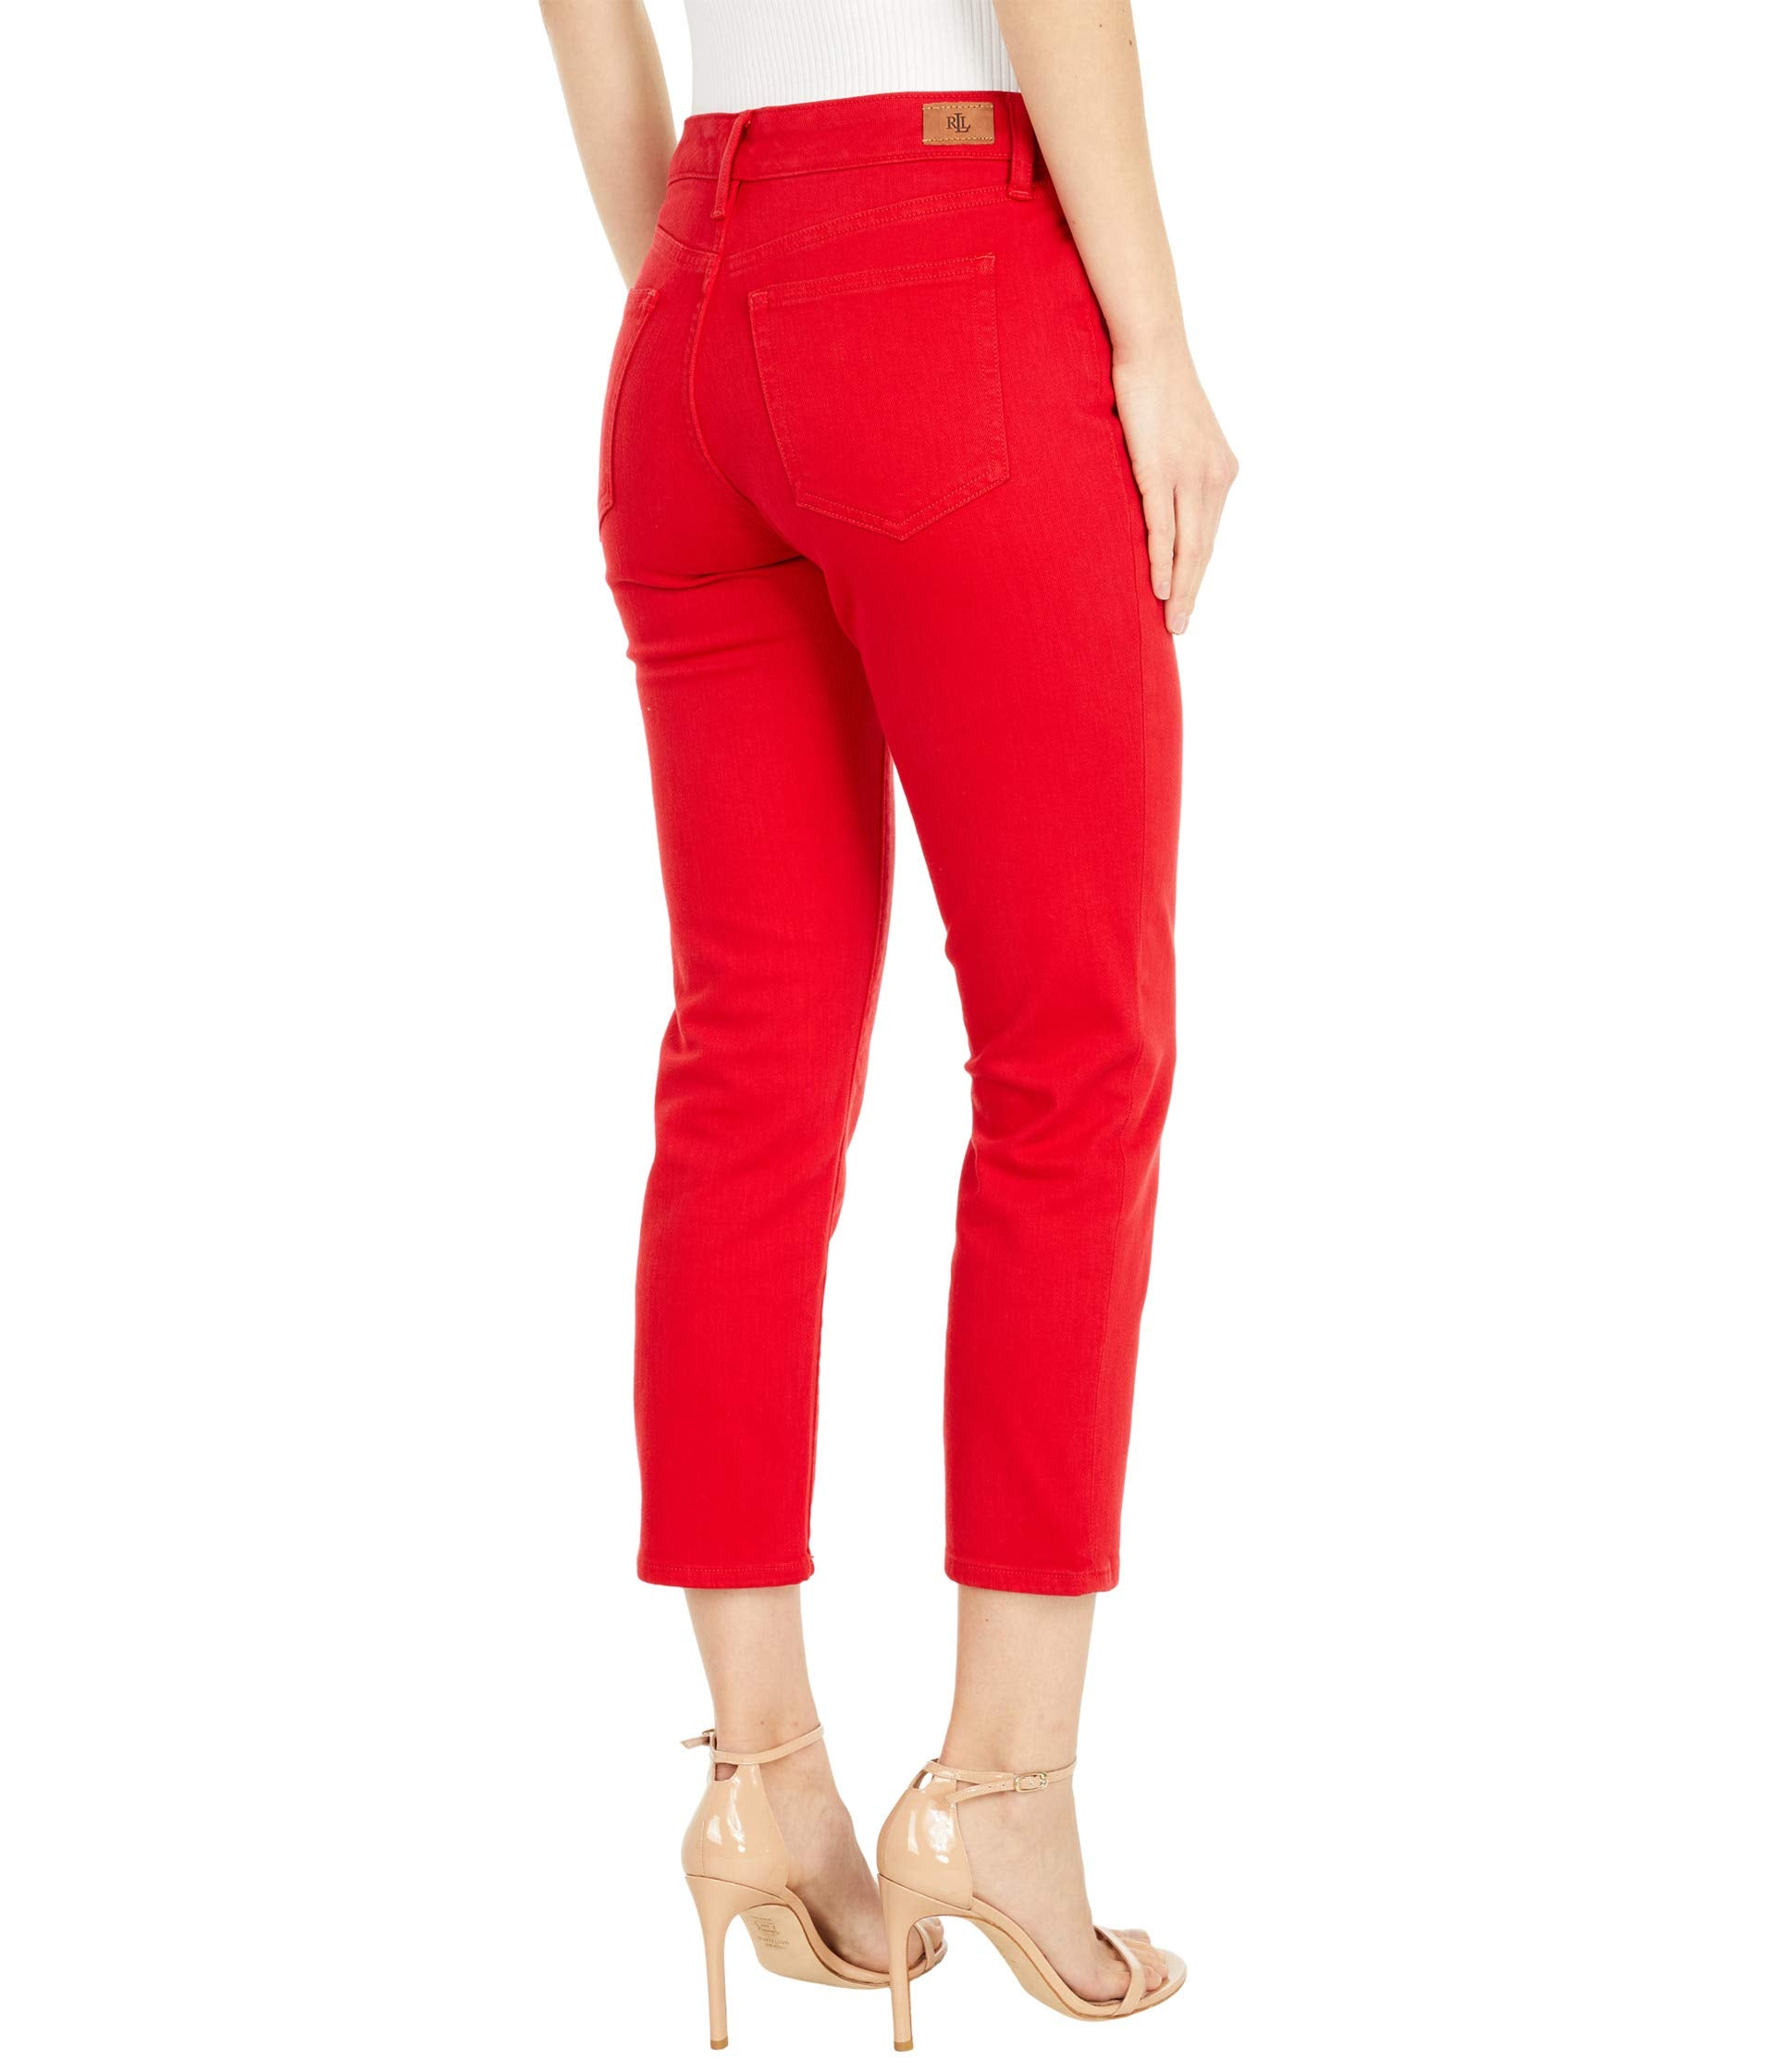 Premier Straight Crop Jeans in Bold Red Wash